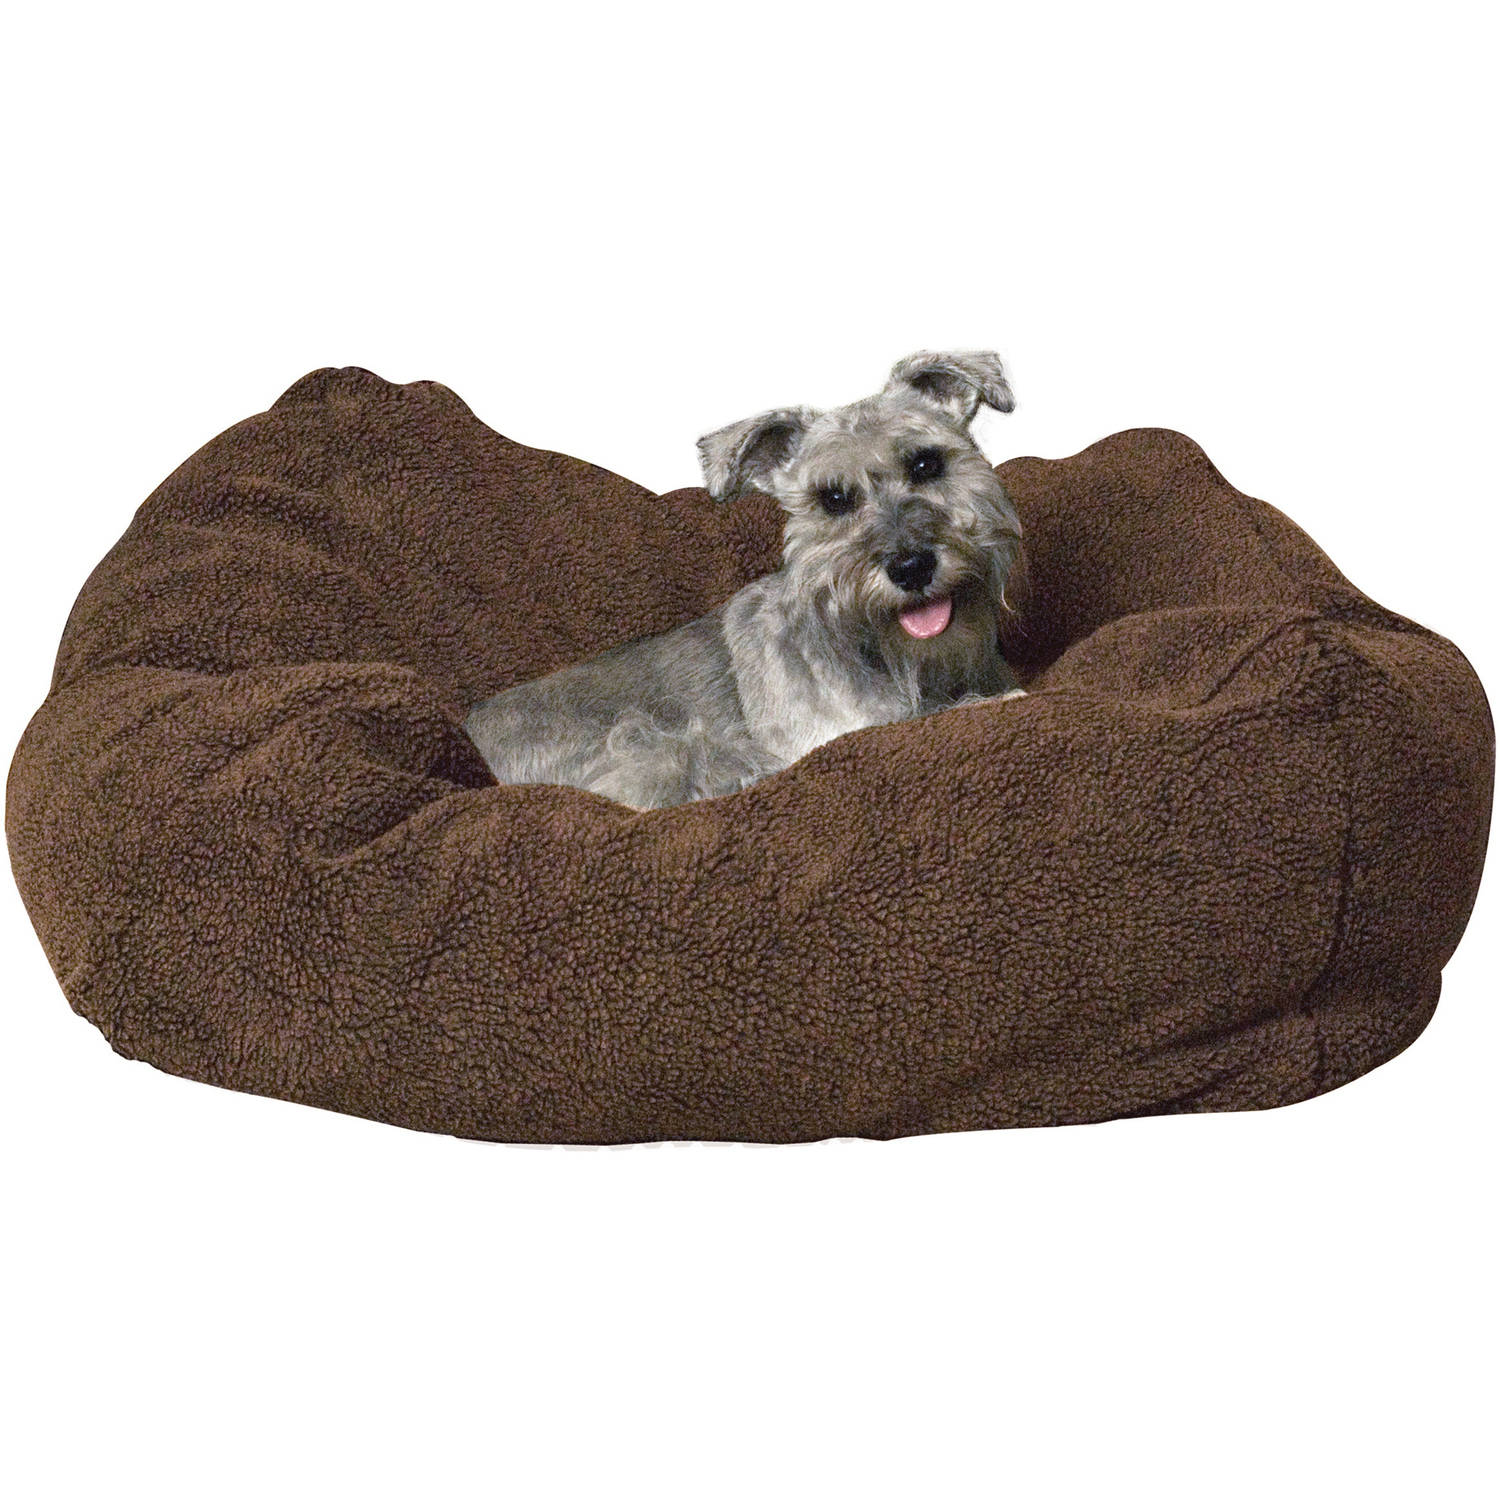 K&H Pet Products Cuddle Cube Dog Bed, Small, Mocha